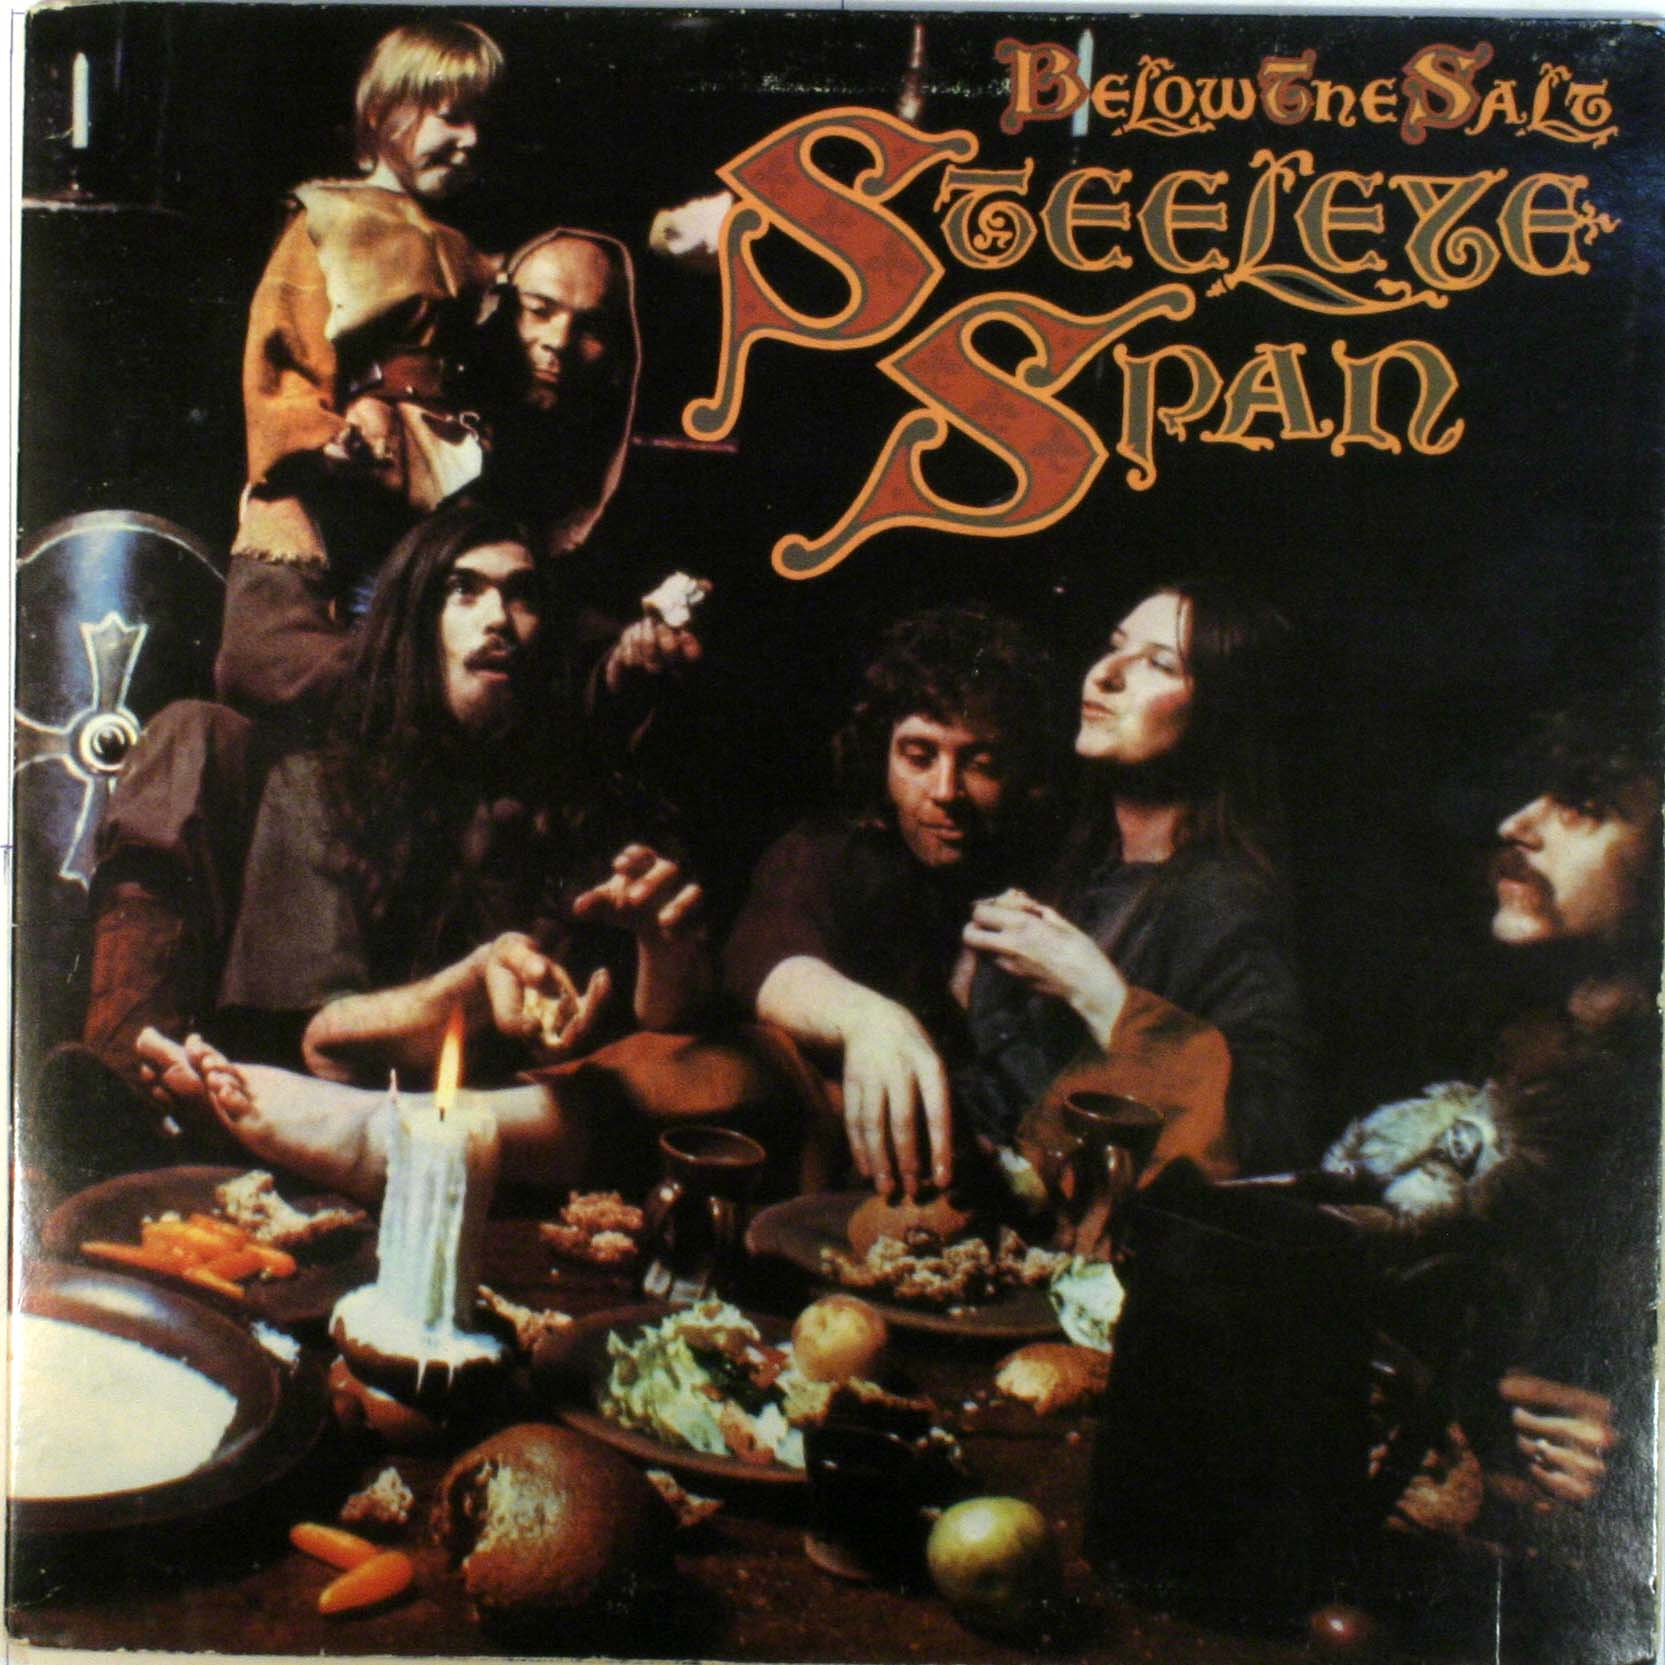 STEELEYE SPAN - Below The Salt EP